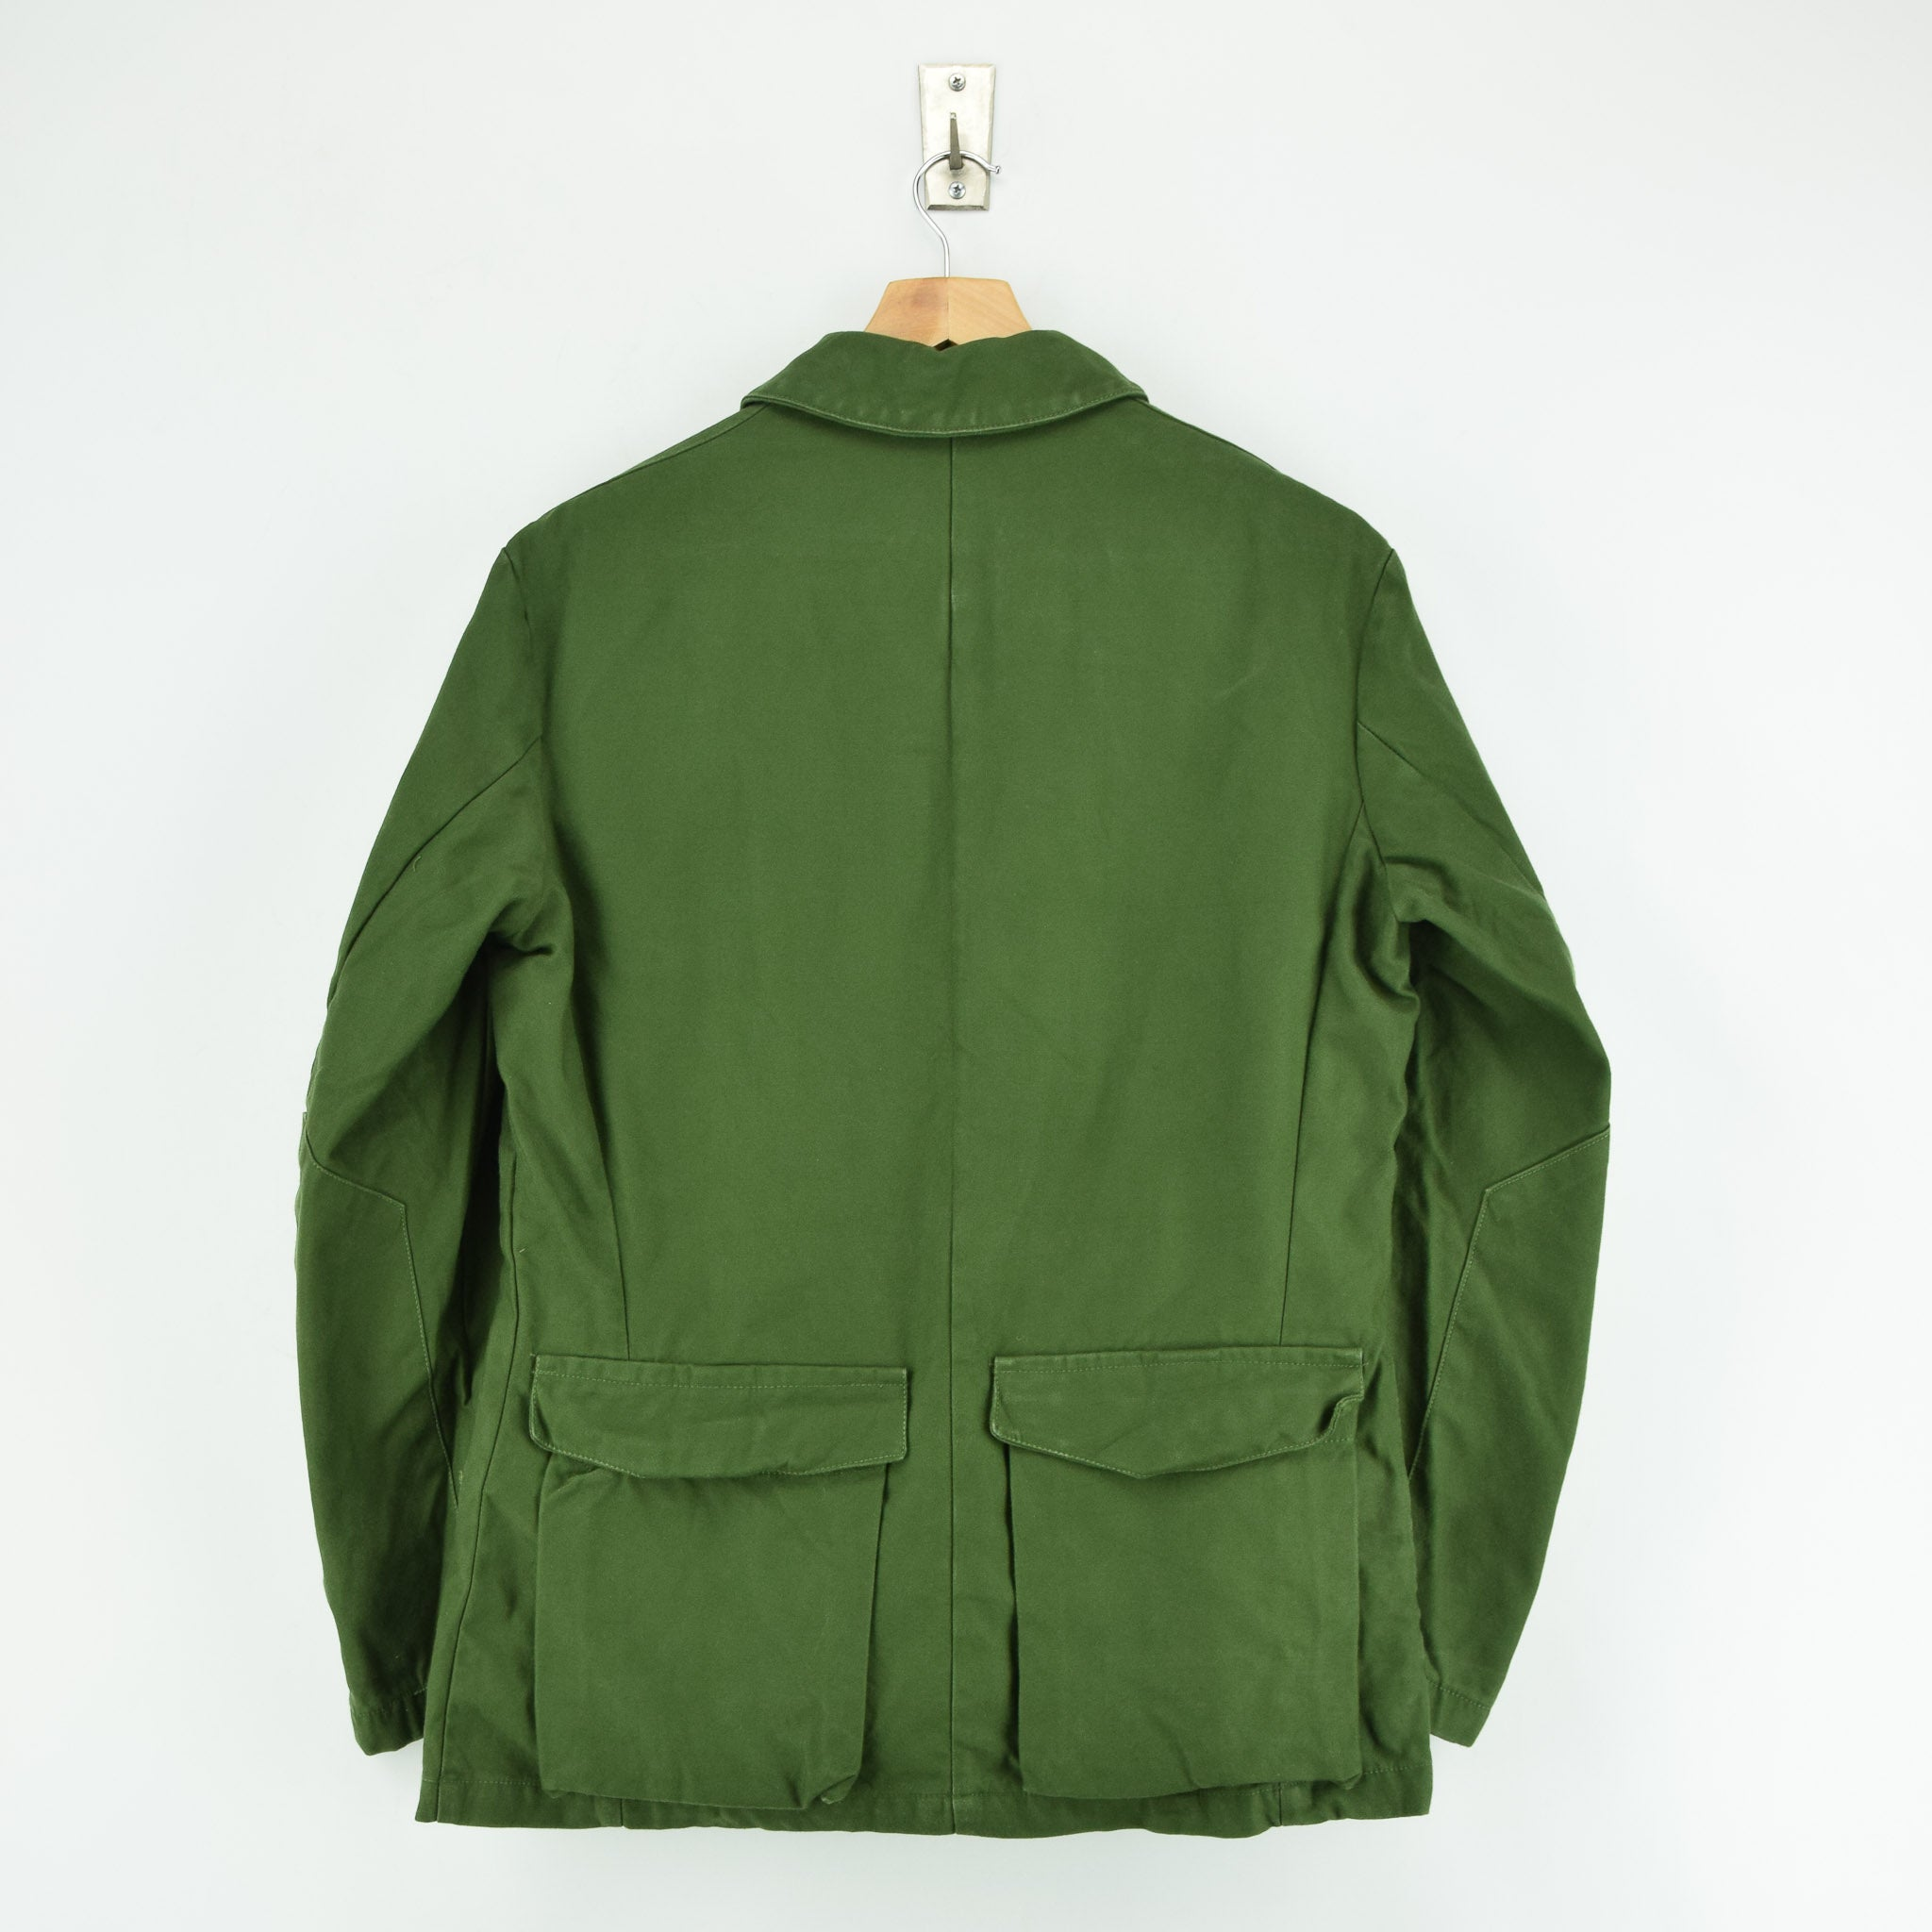 Vintage 60s Swedish M59 Field Military Olive Green Worker Style Jacket S back